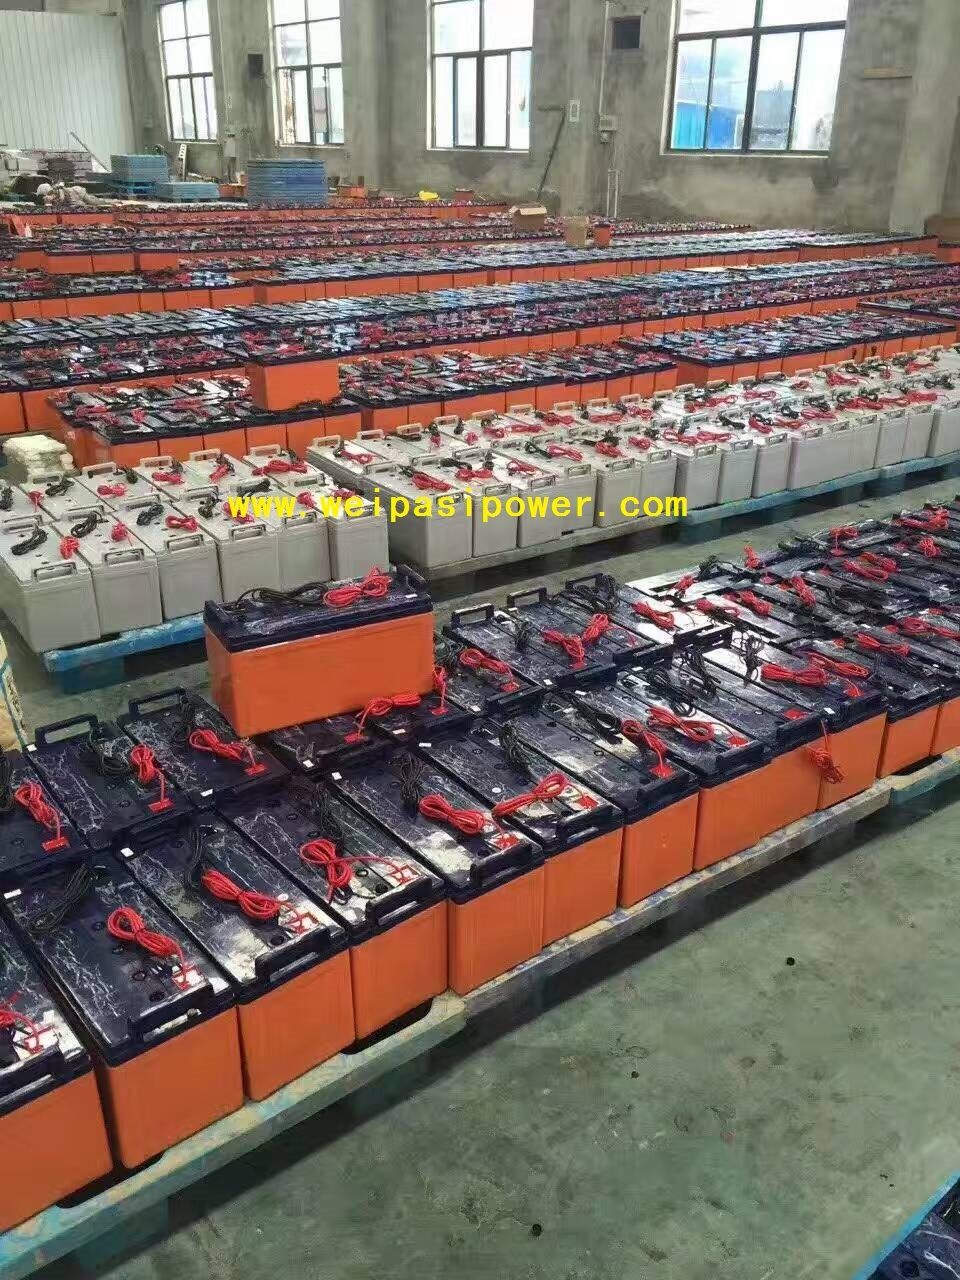 12V120AH,Can customize 42AH,50AH,60AH,65AH,70AH,85AH, 90AH,105AH,110AH,125AH; Storage Power;UPS;CPS; EPS;ECO;Deep-Cycle AGM;VRLA;Sealed Lead-Acid Battery